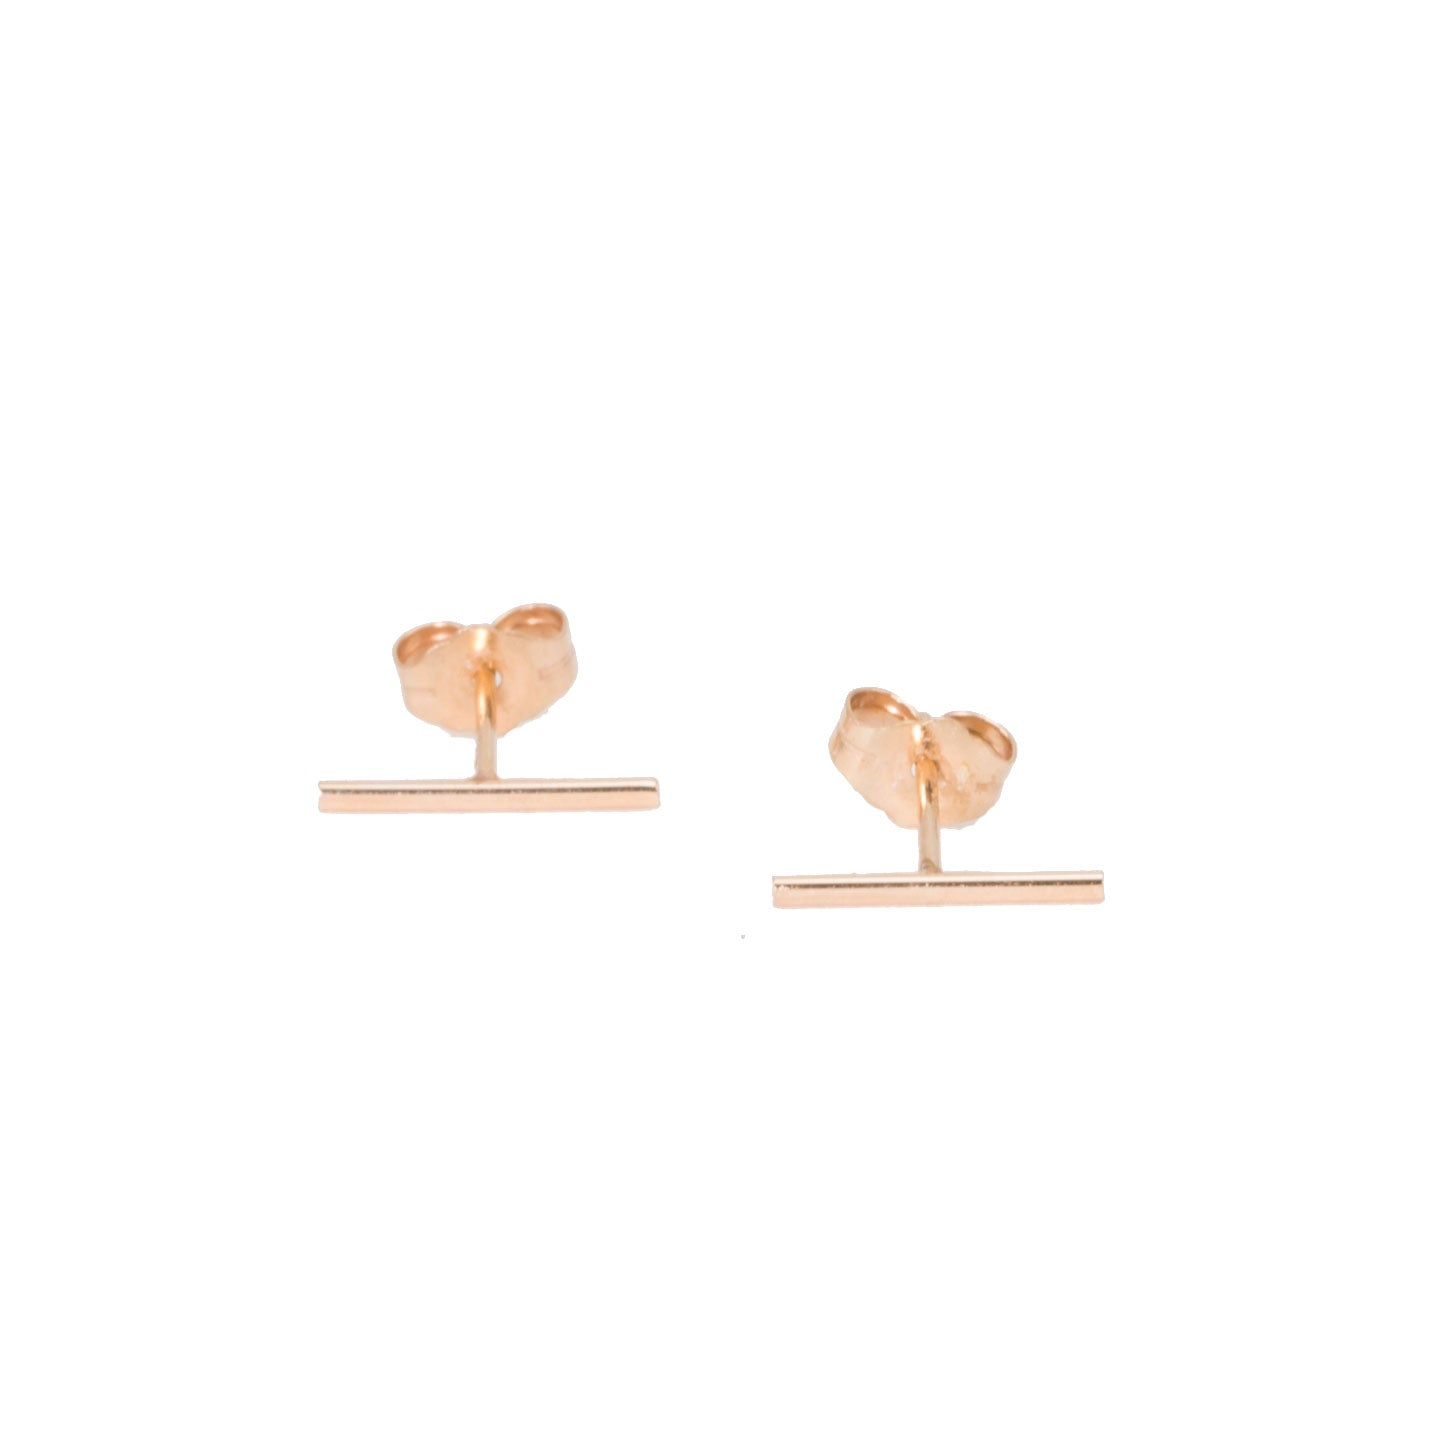 stud jewellery eden aliceeden alice jewelry products and dash gold grande earrings ball shop dot bar